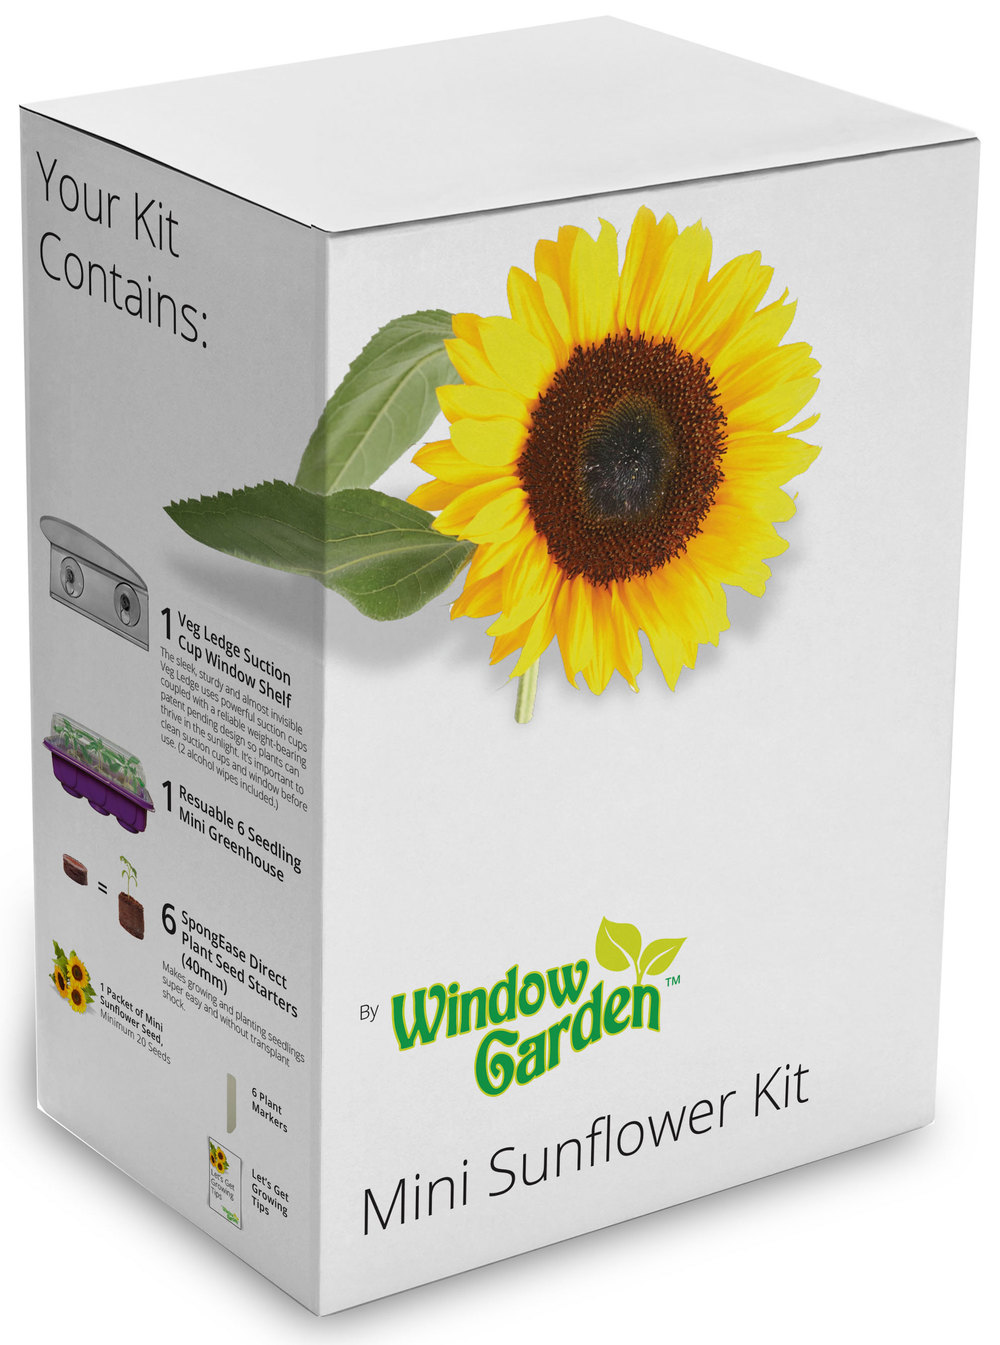 sunflower_kit.jpg